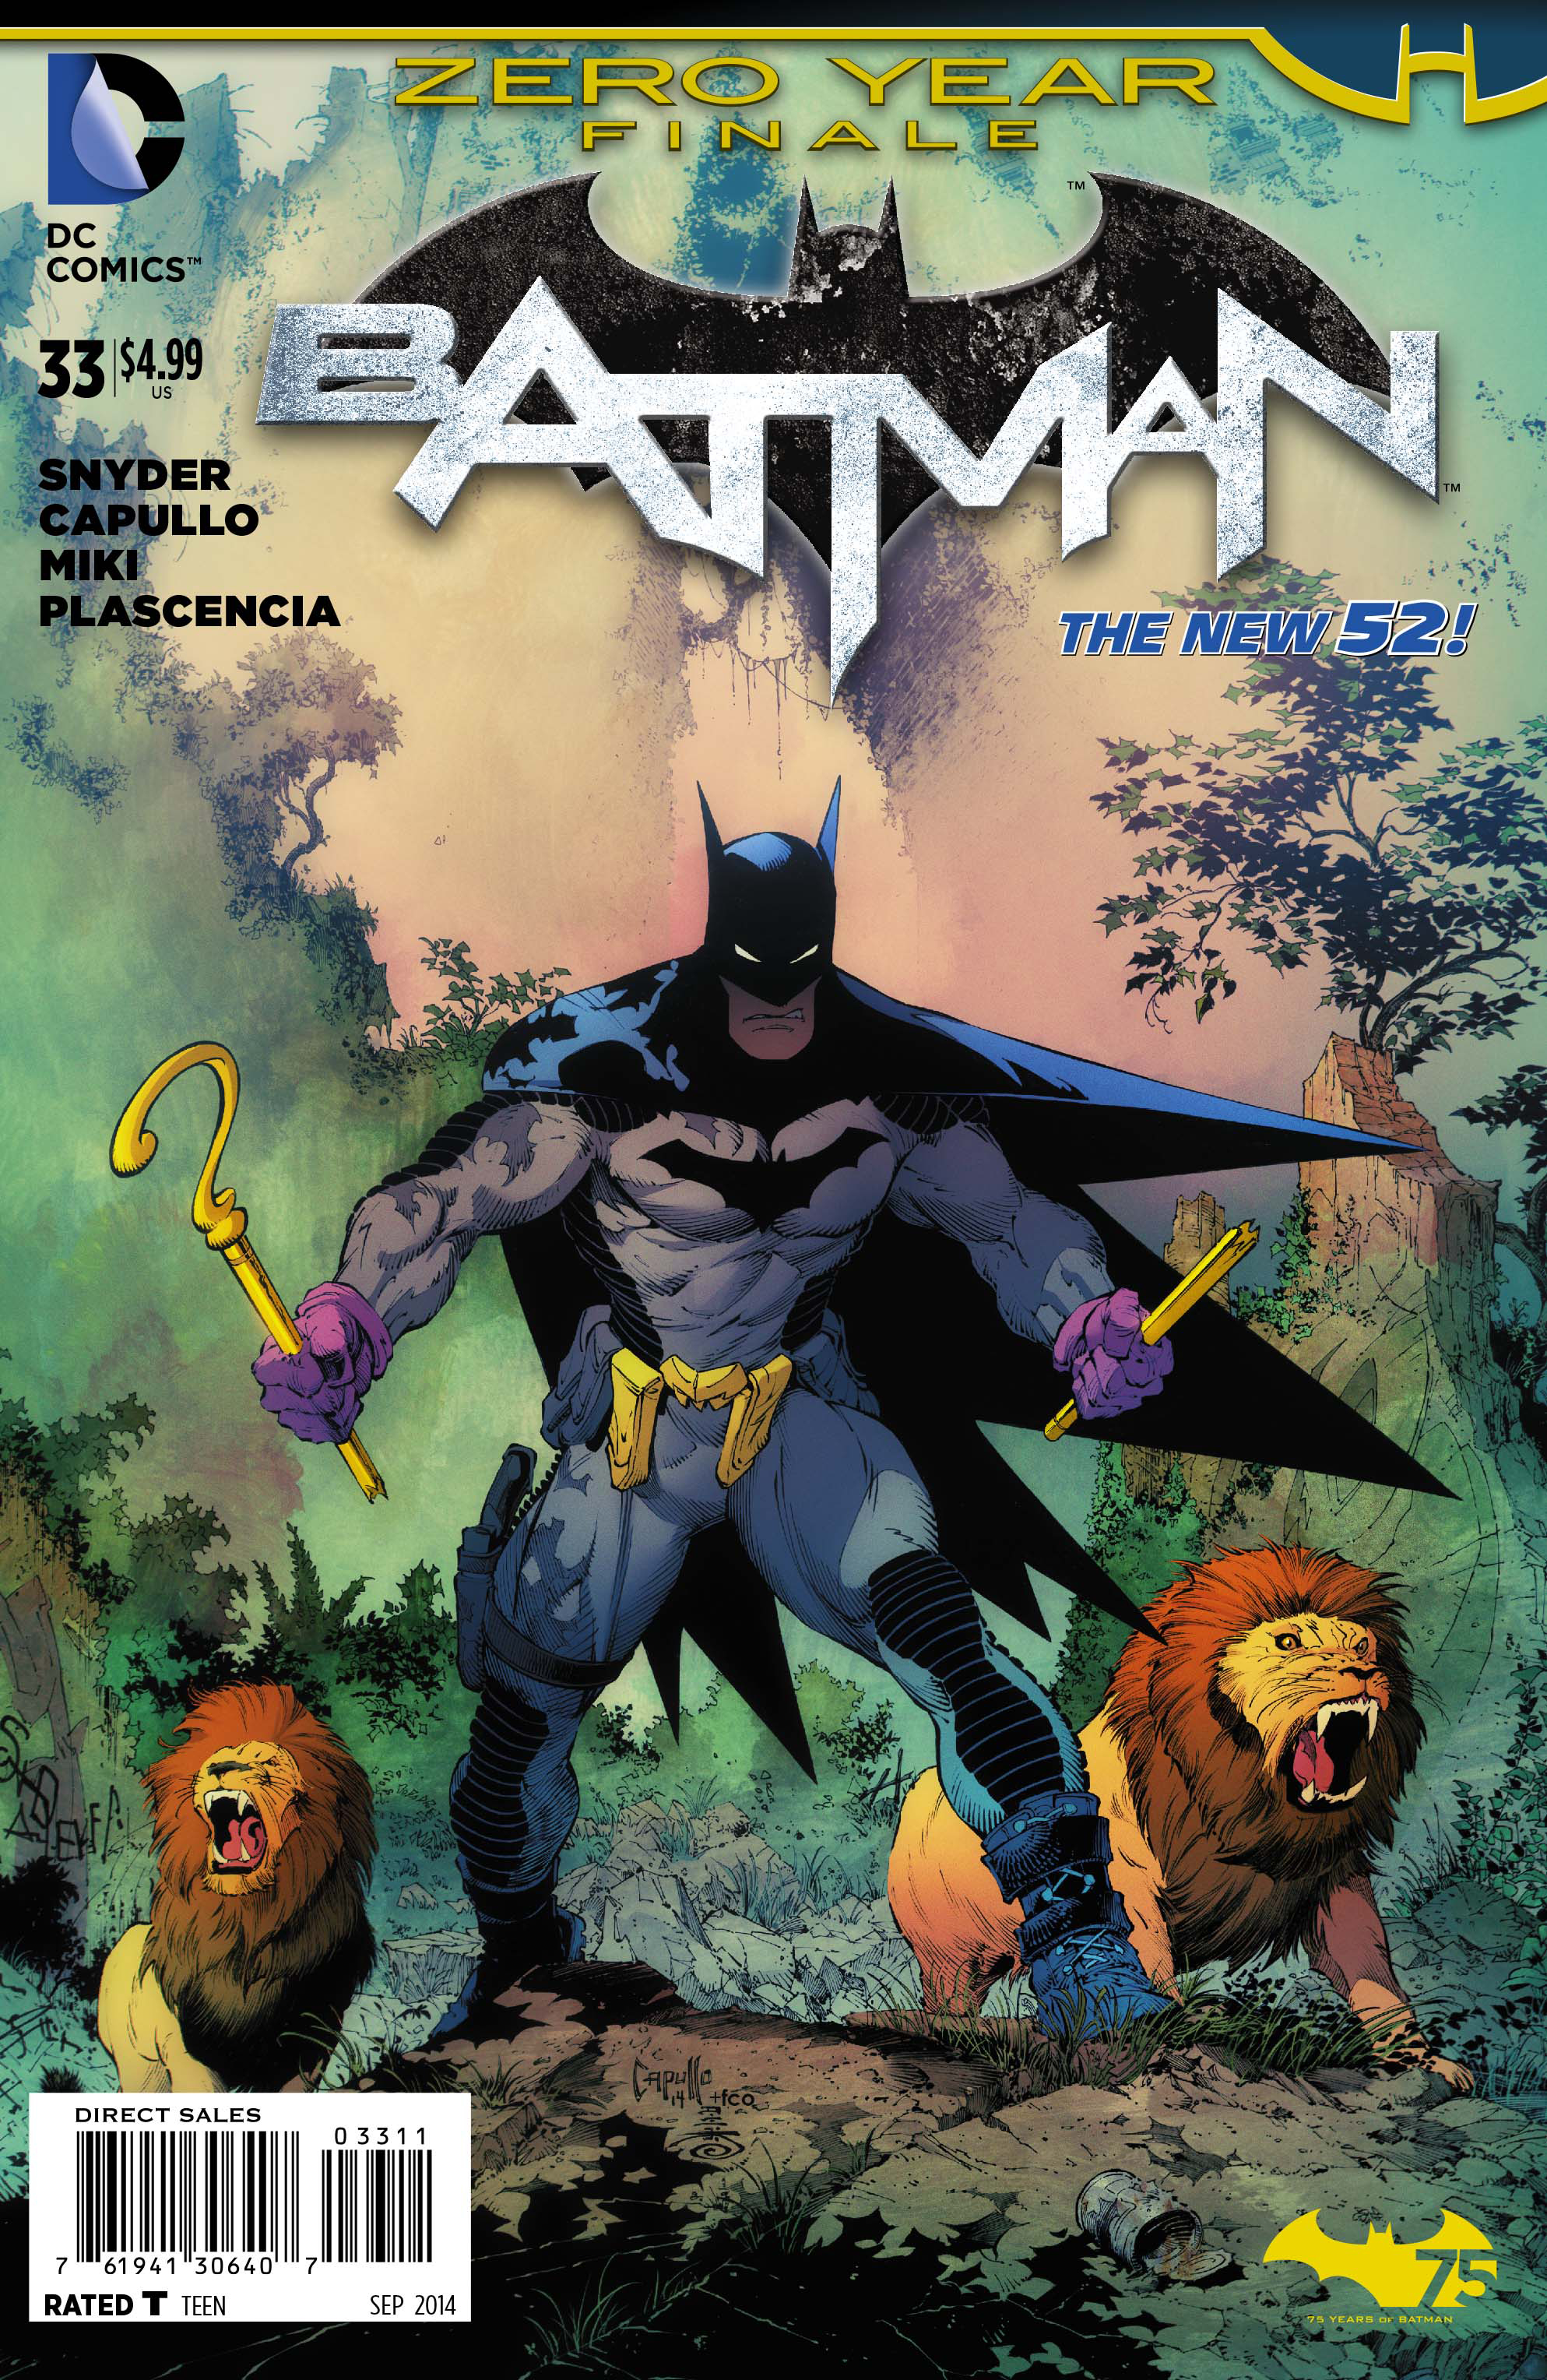 BATMAN #33 (ZERO YEAR) (NOTE PRICE)